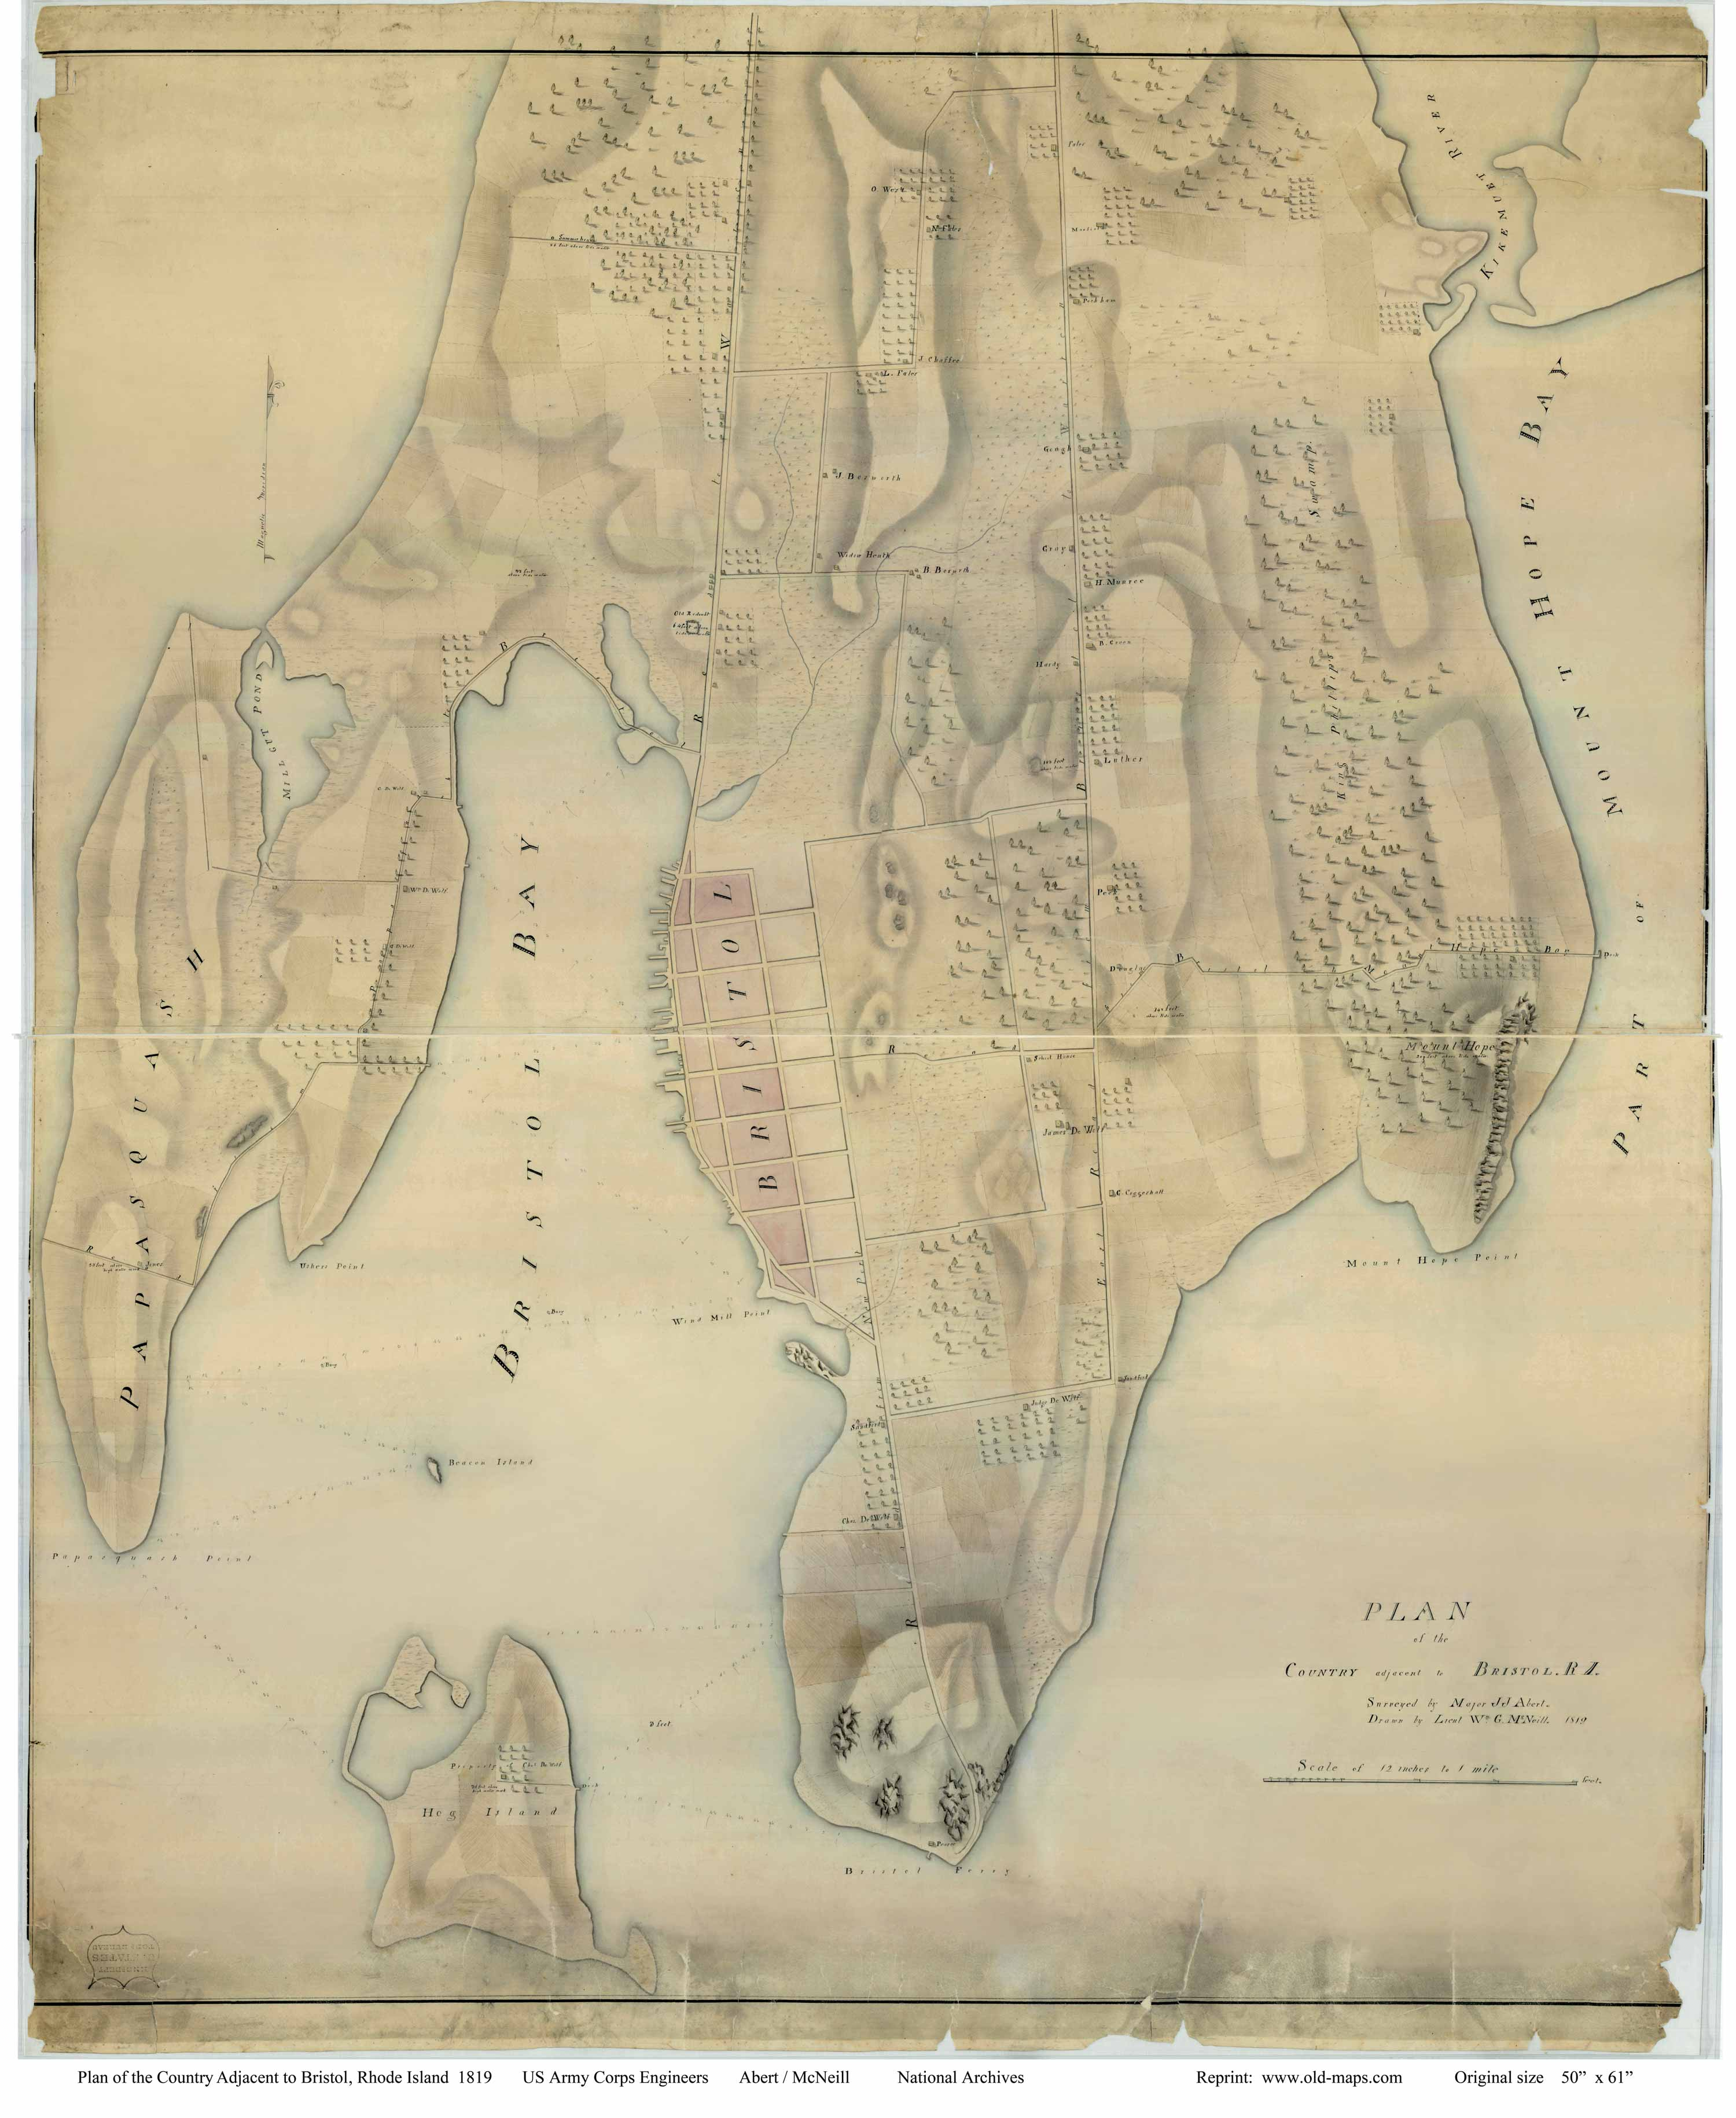 Old Maps of Rhode Island - National Archives Old Maps Of Barrington Ri on map of west warwick ri, map of wakefield ri, map of cranston ri, map of american fork ut, map of ri towns, map of east greenwich ri, map of narragansett bay ri, map of east bay bike path ri, map of pawtucket ri, map of arnoldsburg wv, map of south providence ri, map of browning mt, map of woonsocket ri, map of shannock ri, map of adamsville ri, map of davisville ri, map of spring lake ri, map of south kingstown ri, map of block island ri, map of north kingstown ri,